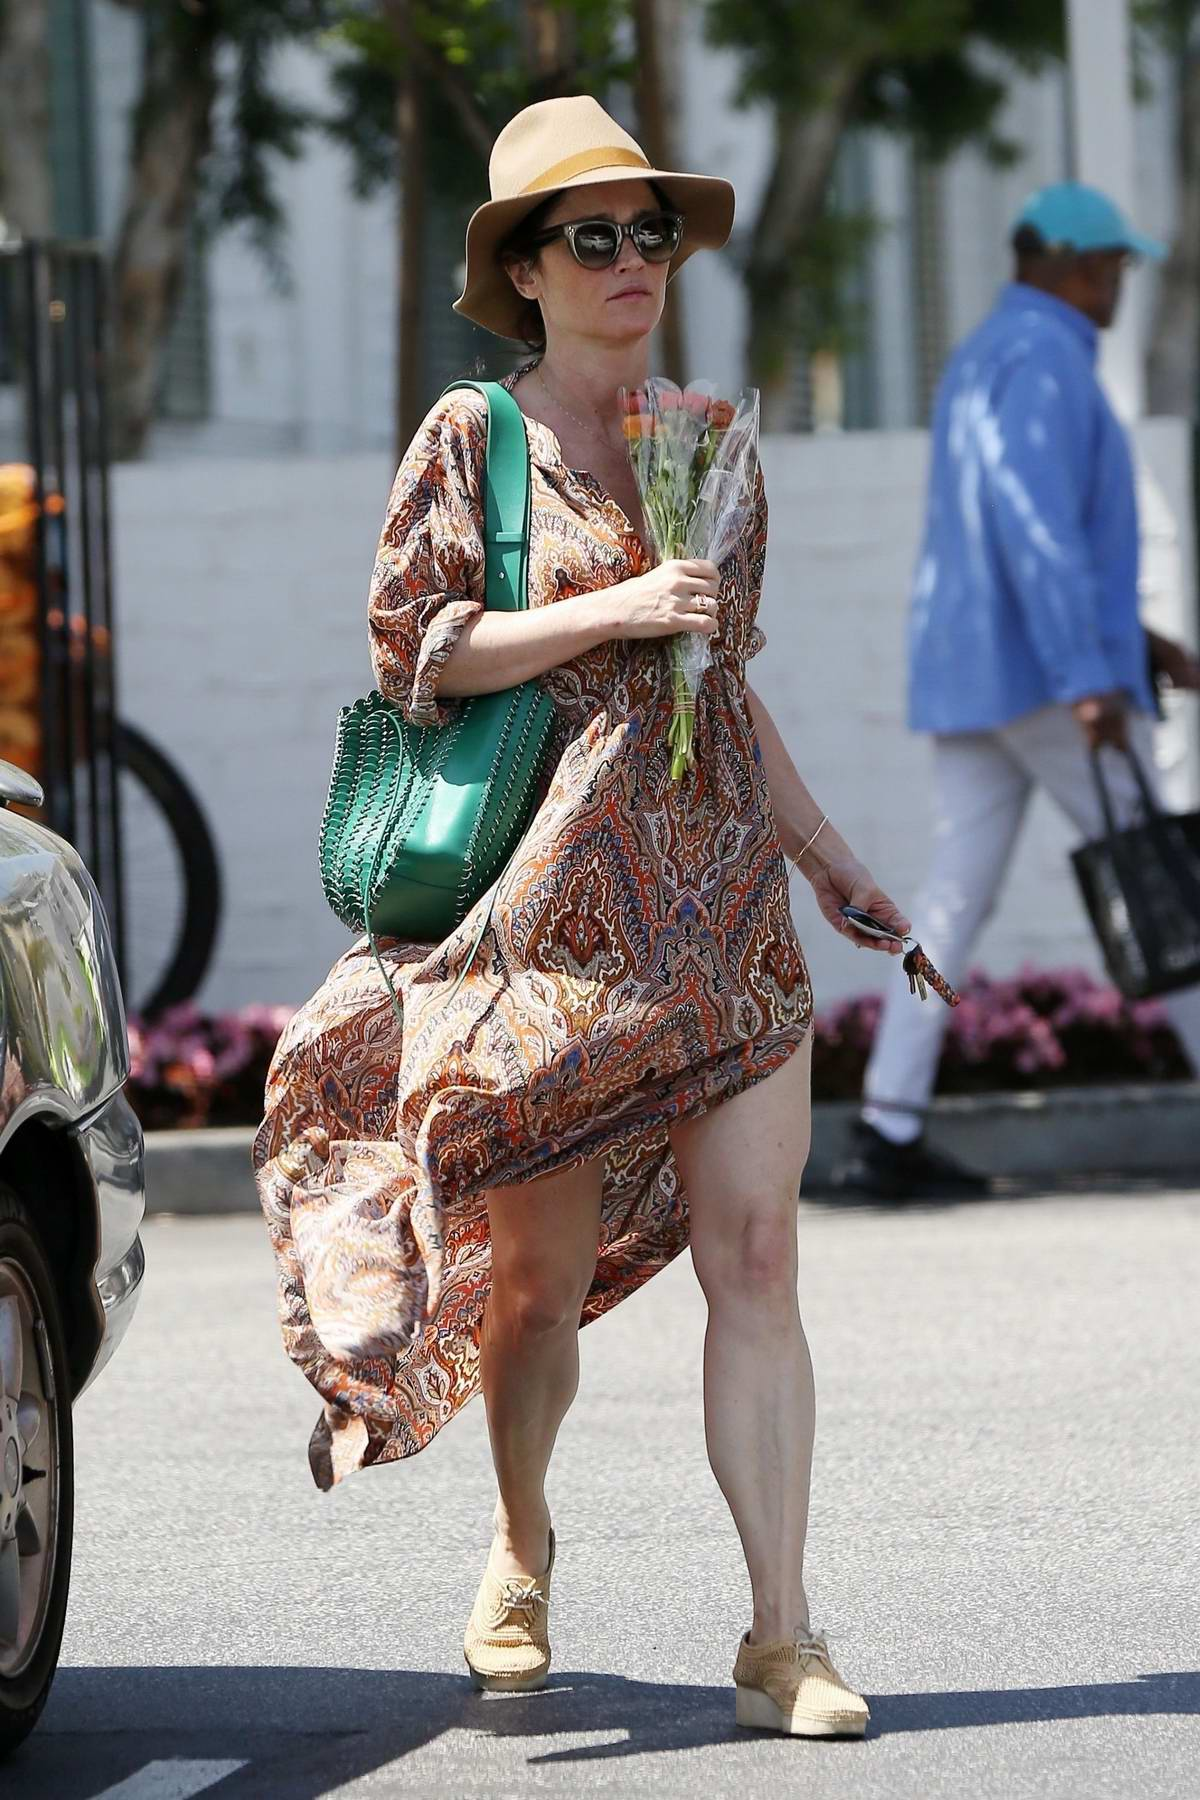 Robin Tunney spotted in a flowing maxi dress while out and about in Los Angeles